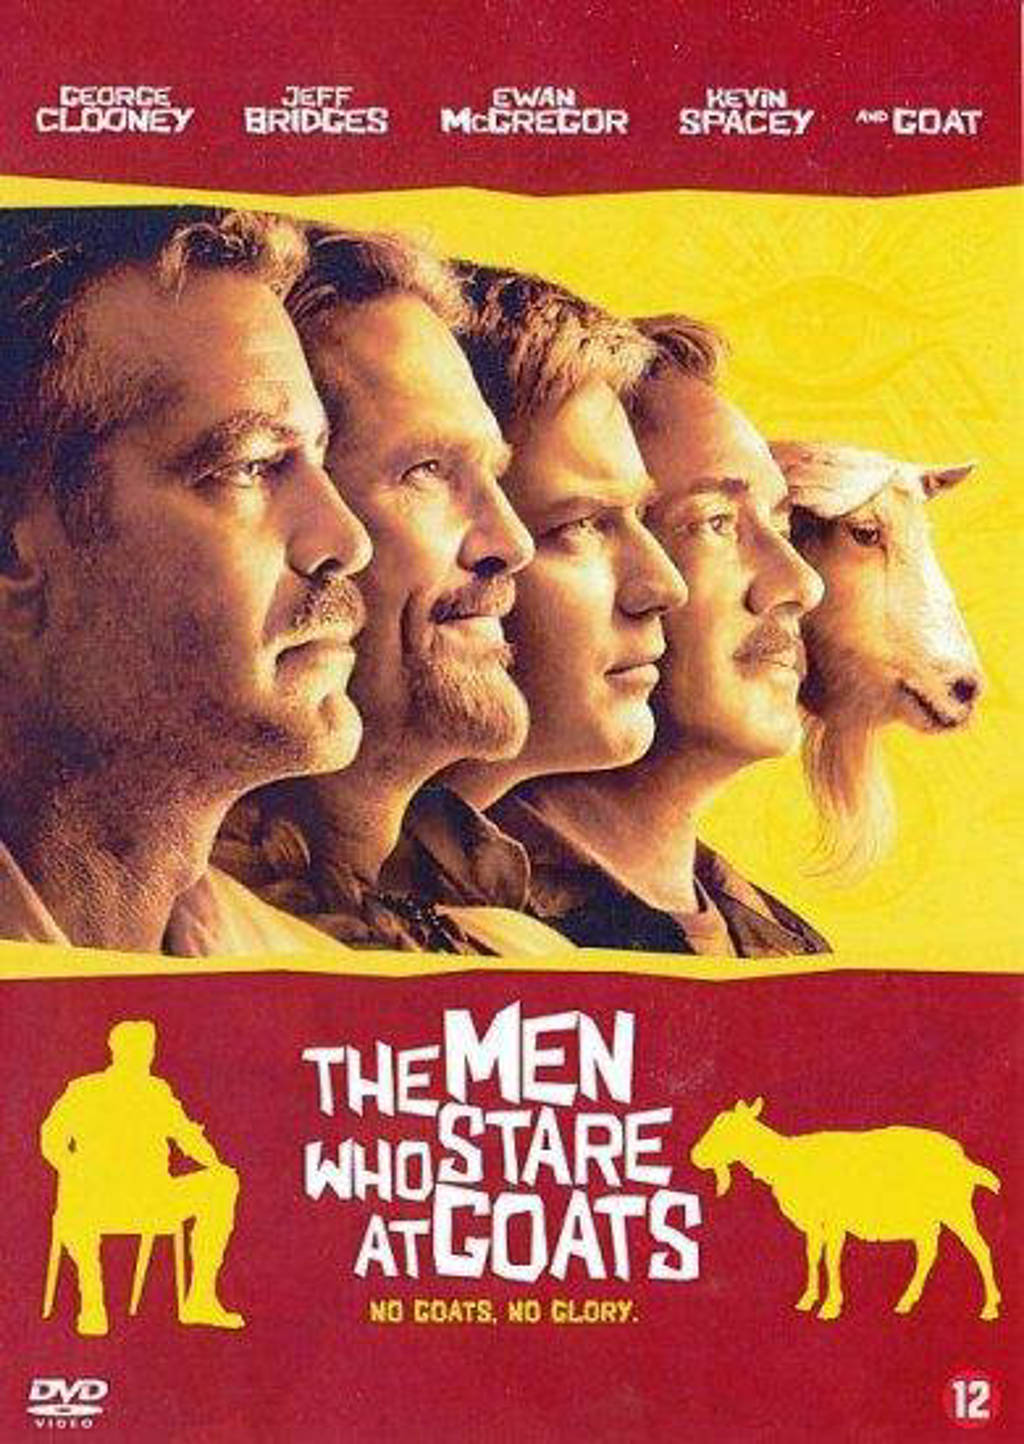 Men who stare at goats (DVD)